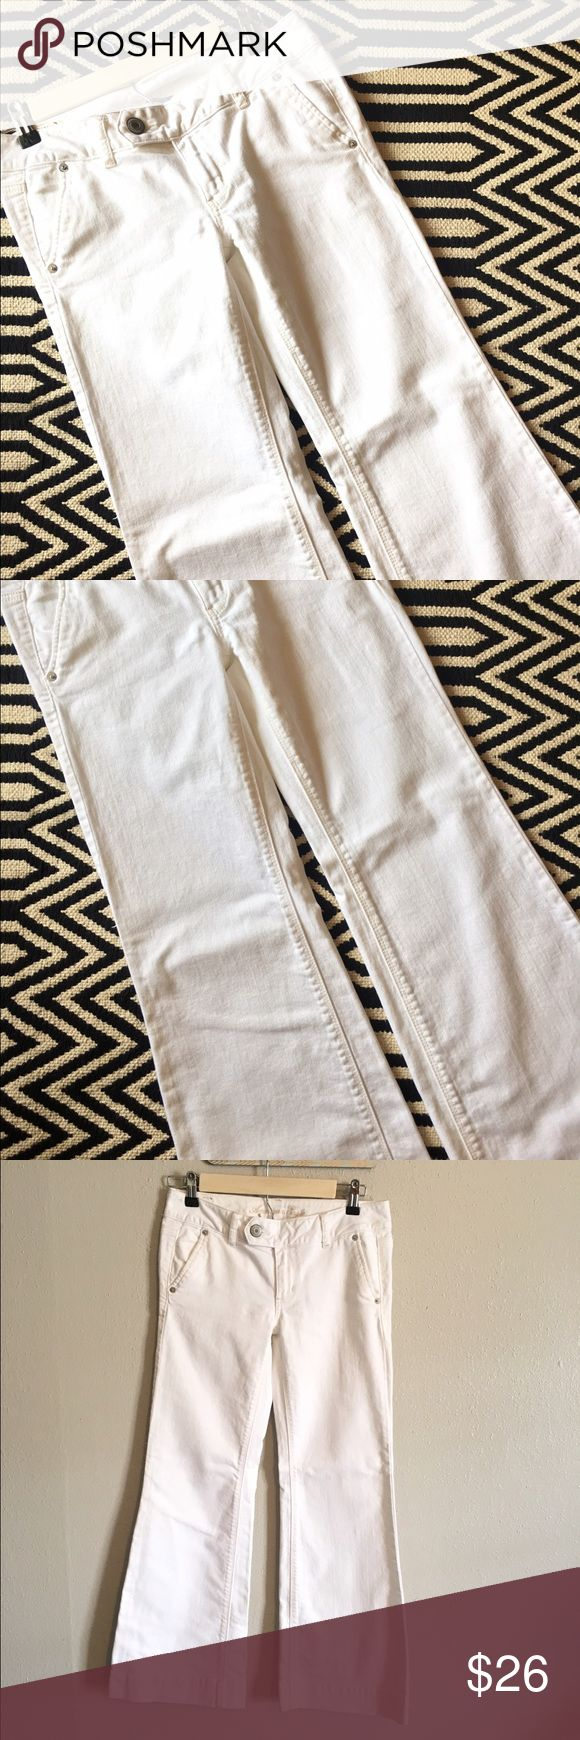 American Eagle Outfitters white denim trousers Excellent condition. American Eagle Outfitters white denim Trousers. Size 2 short. 98% cotton, 2% spandex. Stretch. Measurements pictured. American Eagle Outfitters Pants Trousers